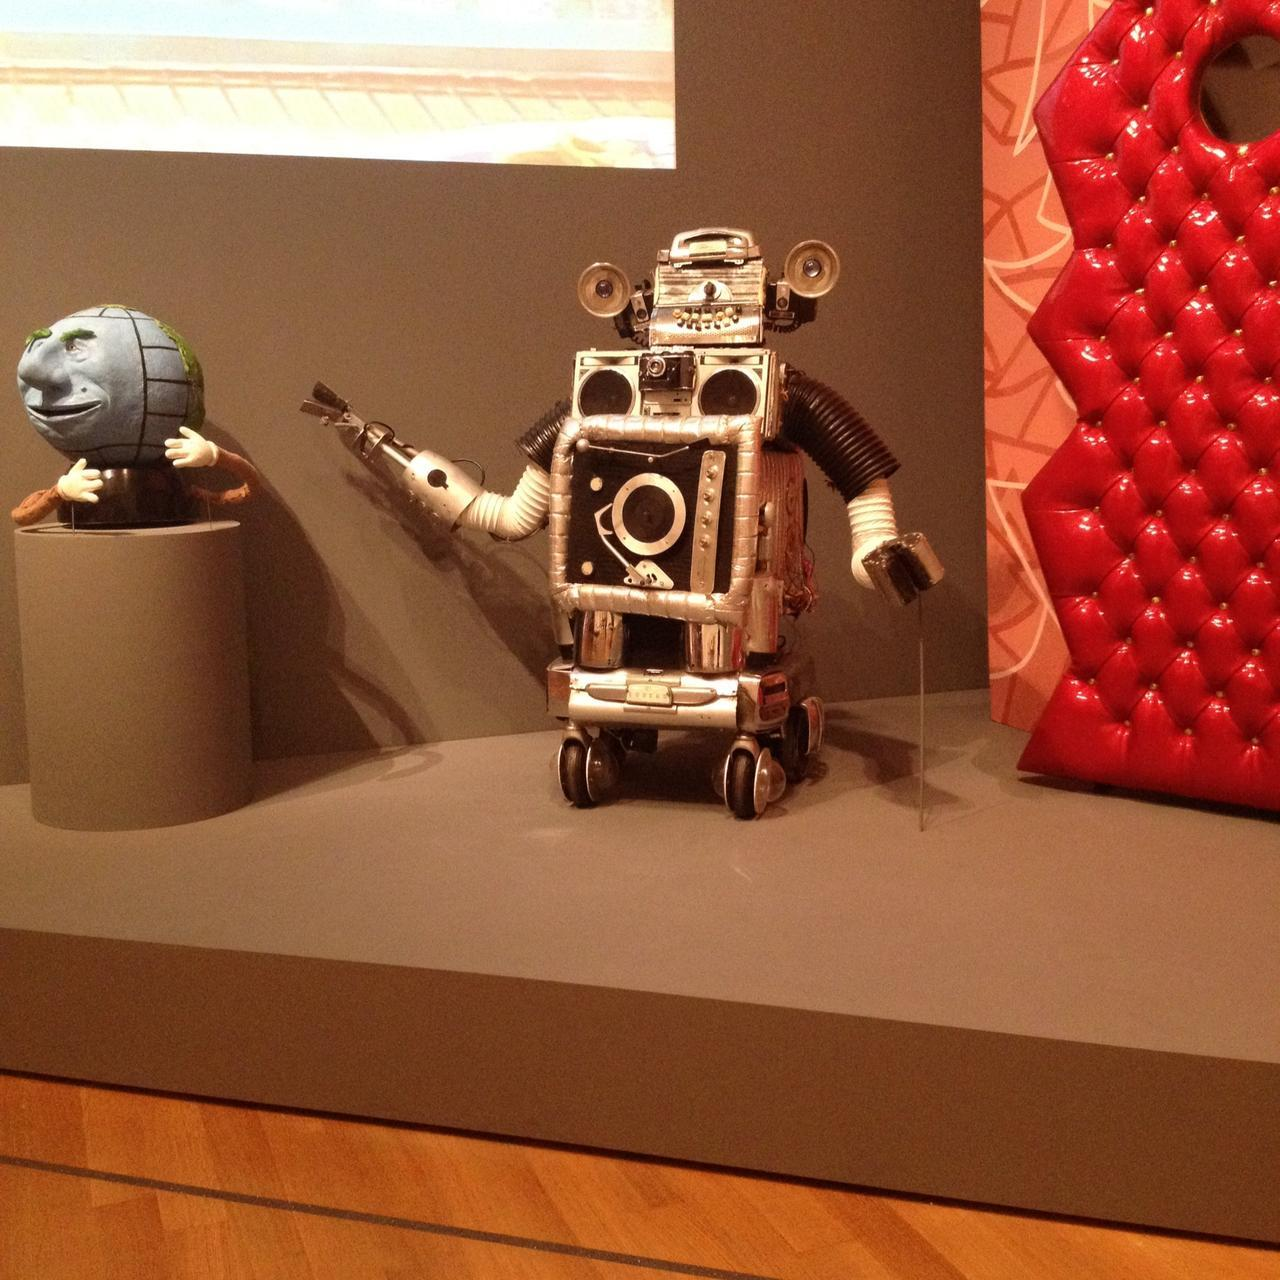 I went to MoMA last week and got to see Conky up close!! It's part of a childhood exhibit, it's so awesome. There's also a full-length Pee-wee's Playhouse episode playing in the background AND Globey AND Clockey AND the iconic red door. eee! I was so excited. I could have stayed for hours just staring at Conky…